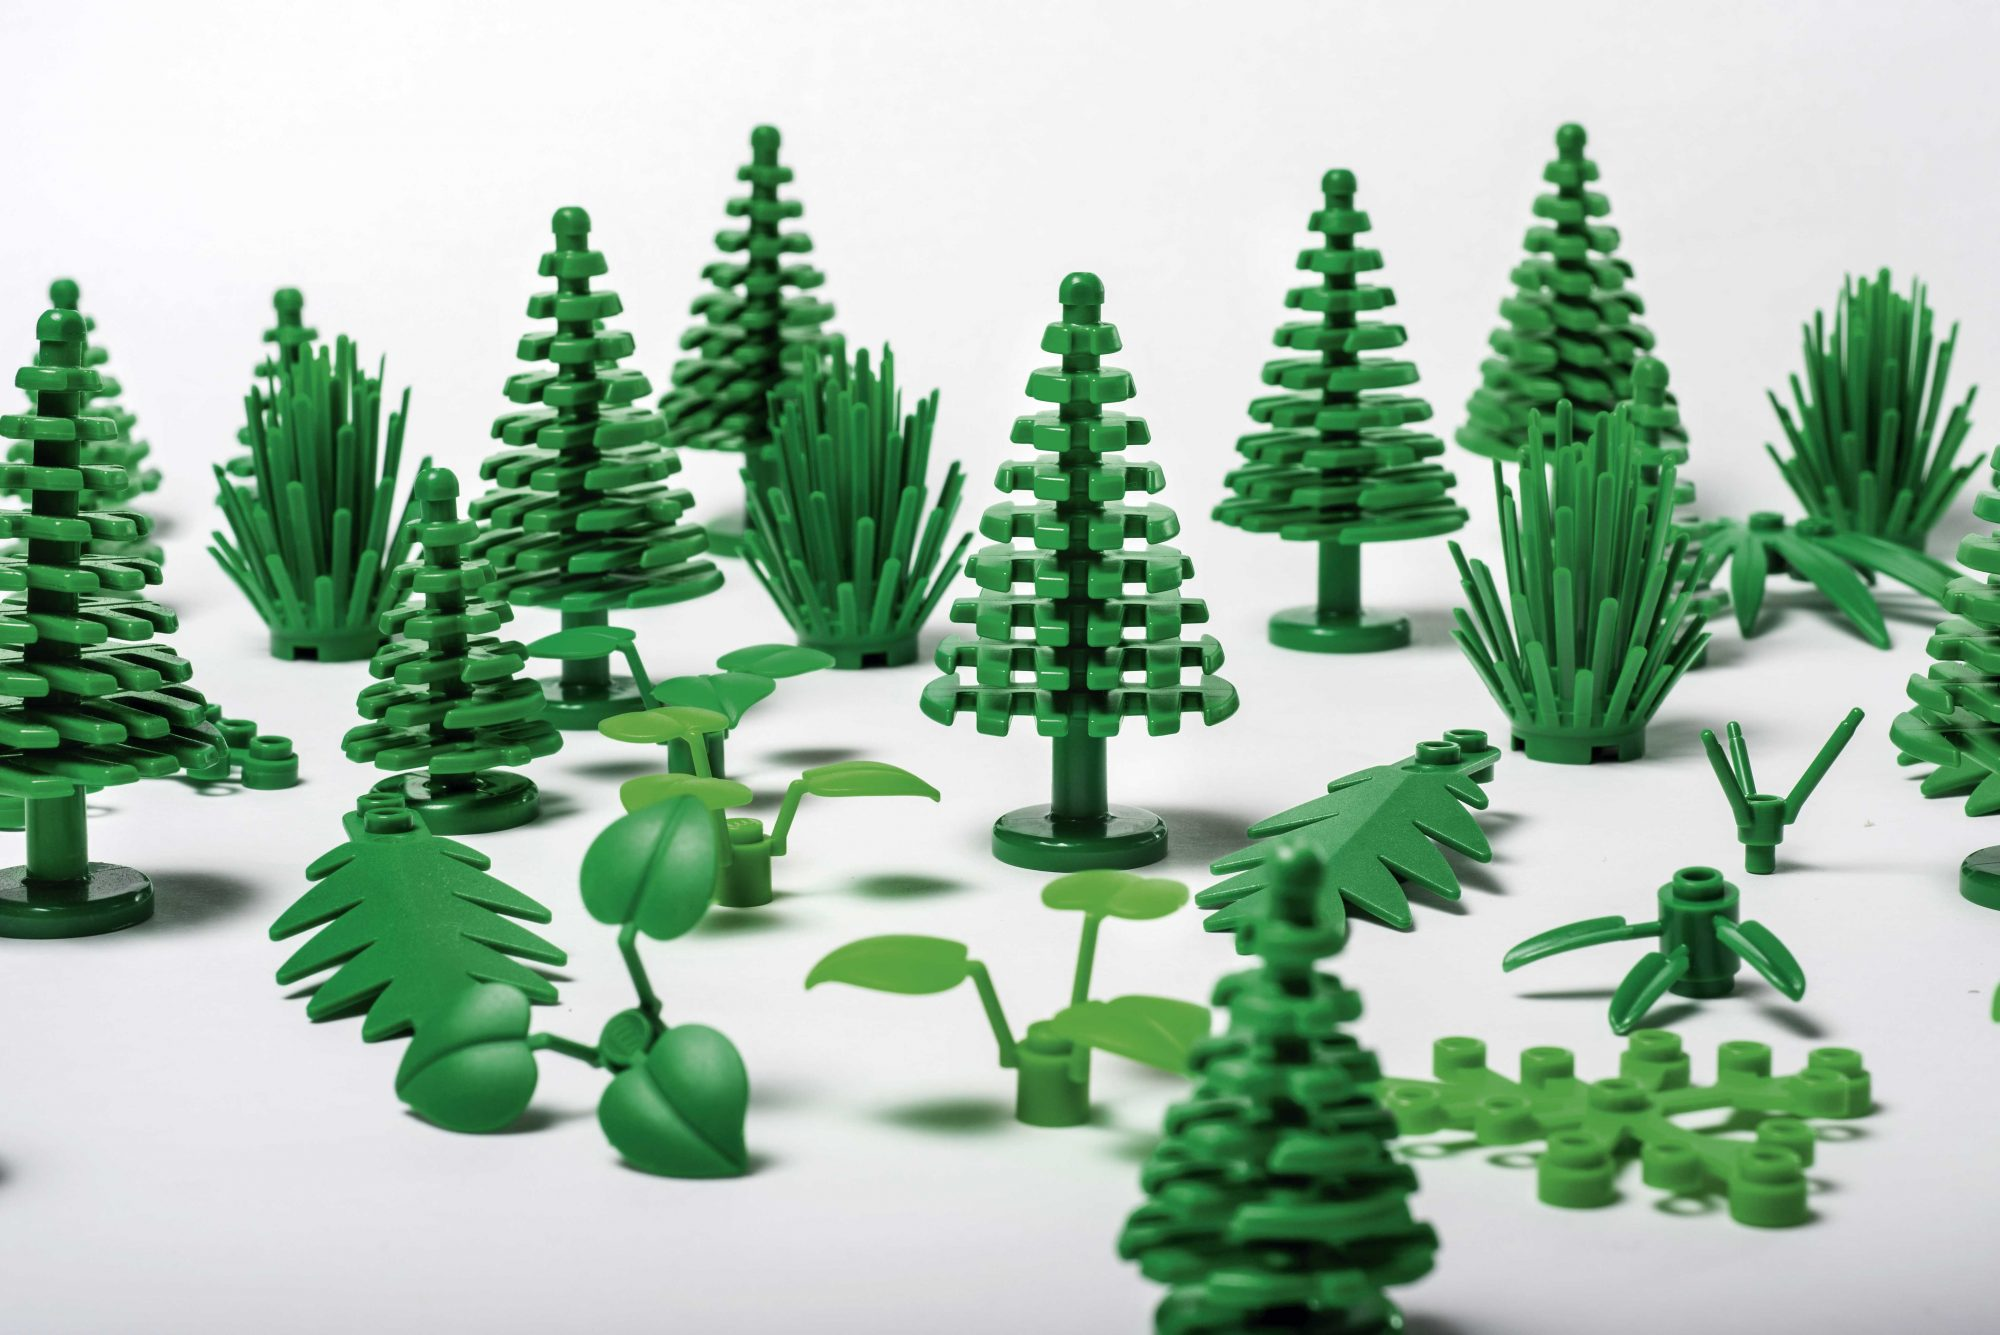 Sustainable Legos